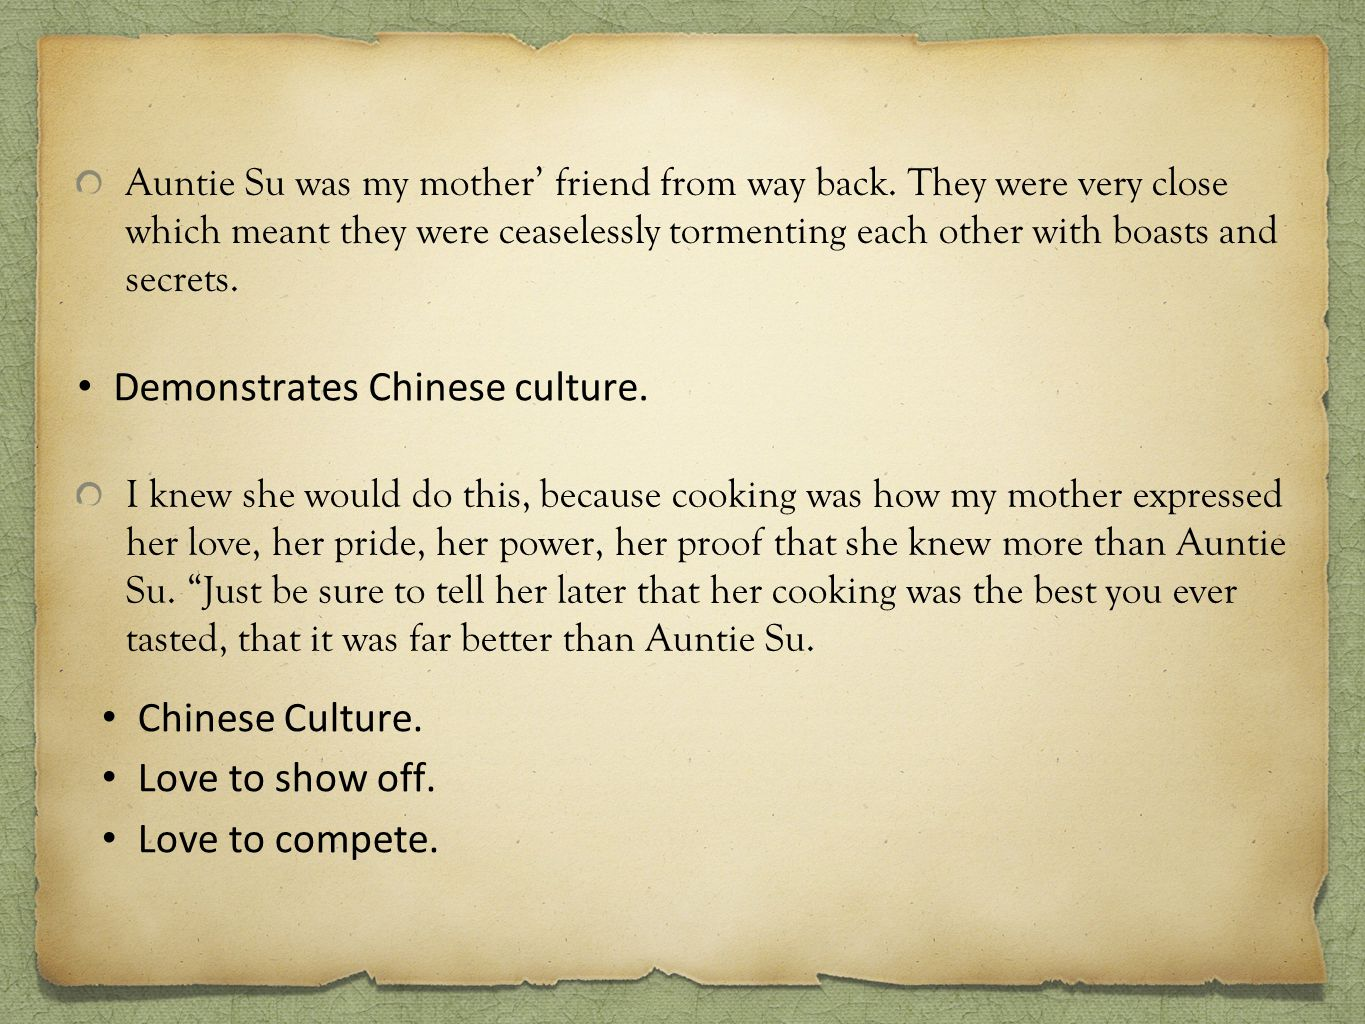 Demonstrates Chinese culture.